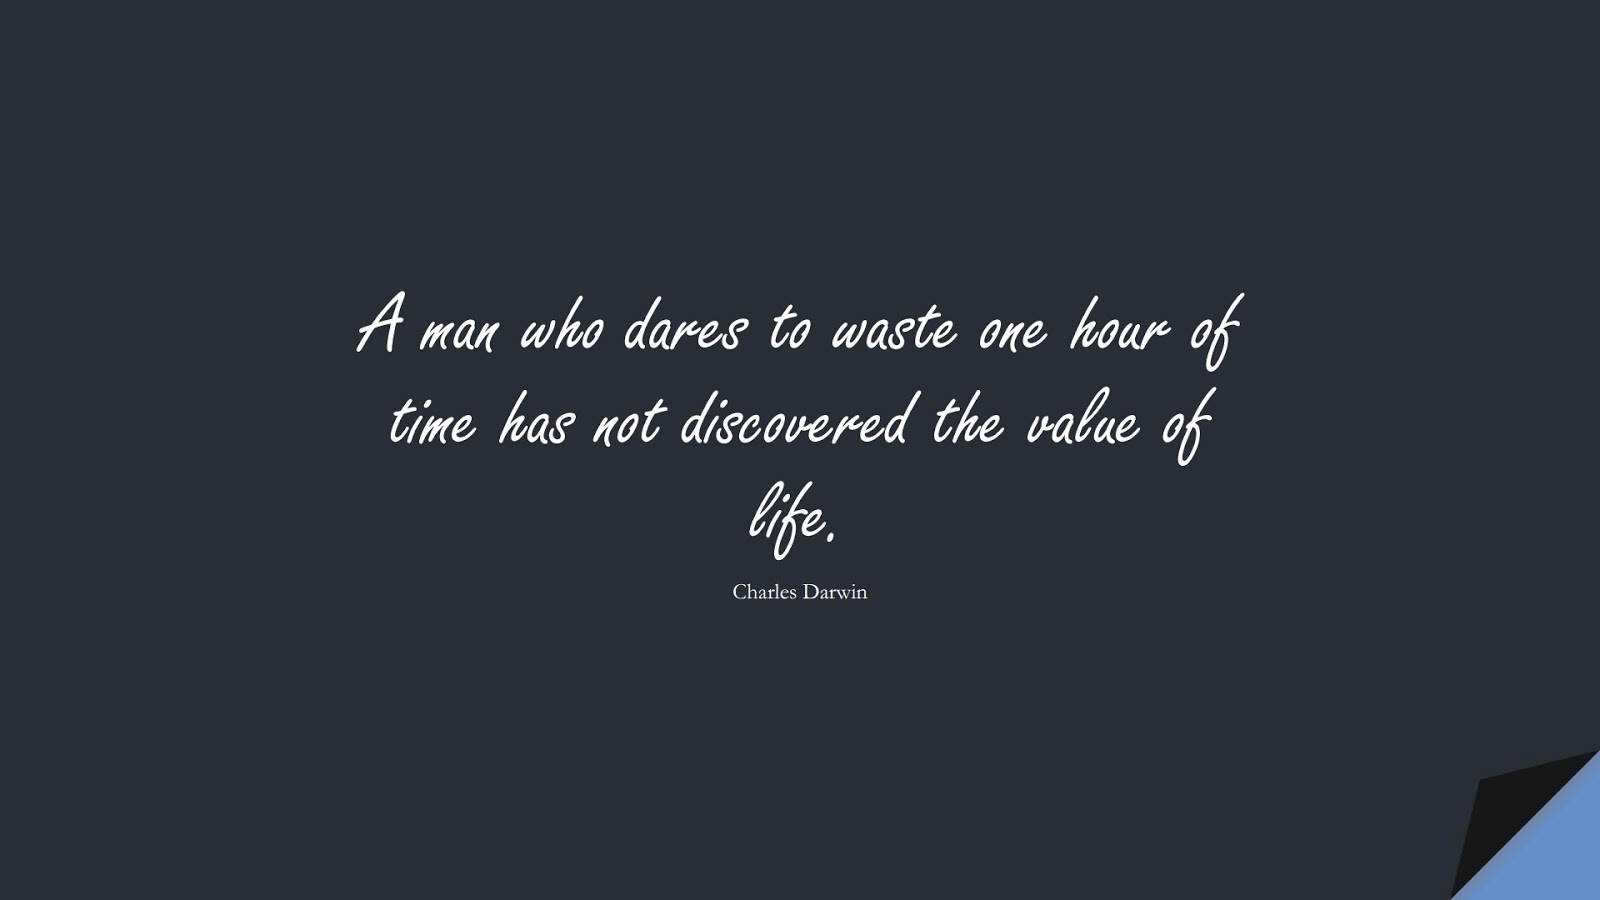 A man who dares to waste one hour of time has not discovered the value of life. (Charles Darwin);  #FamousQuotes